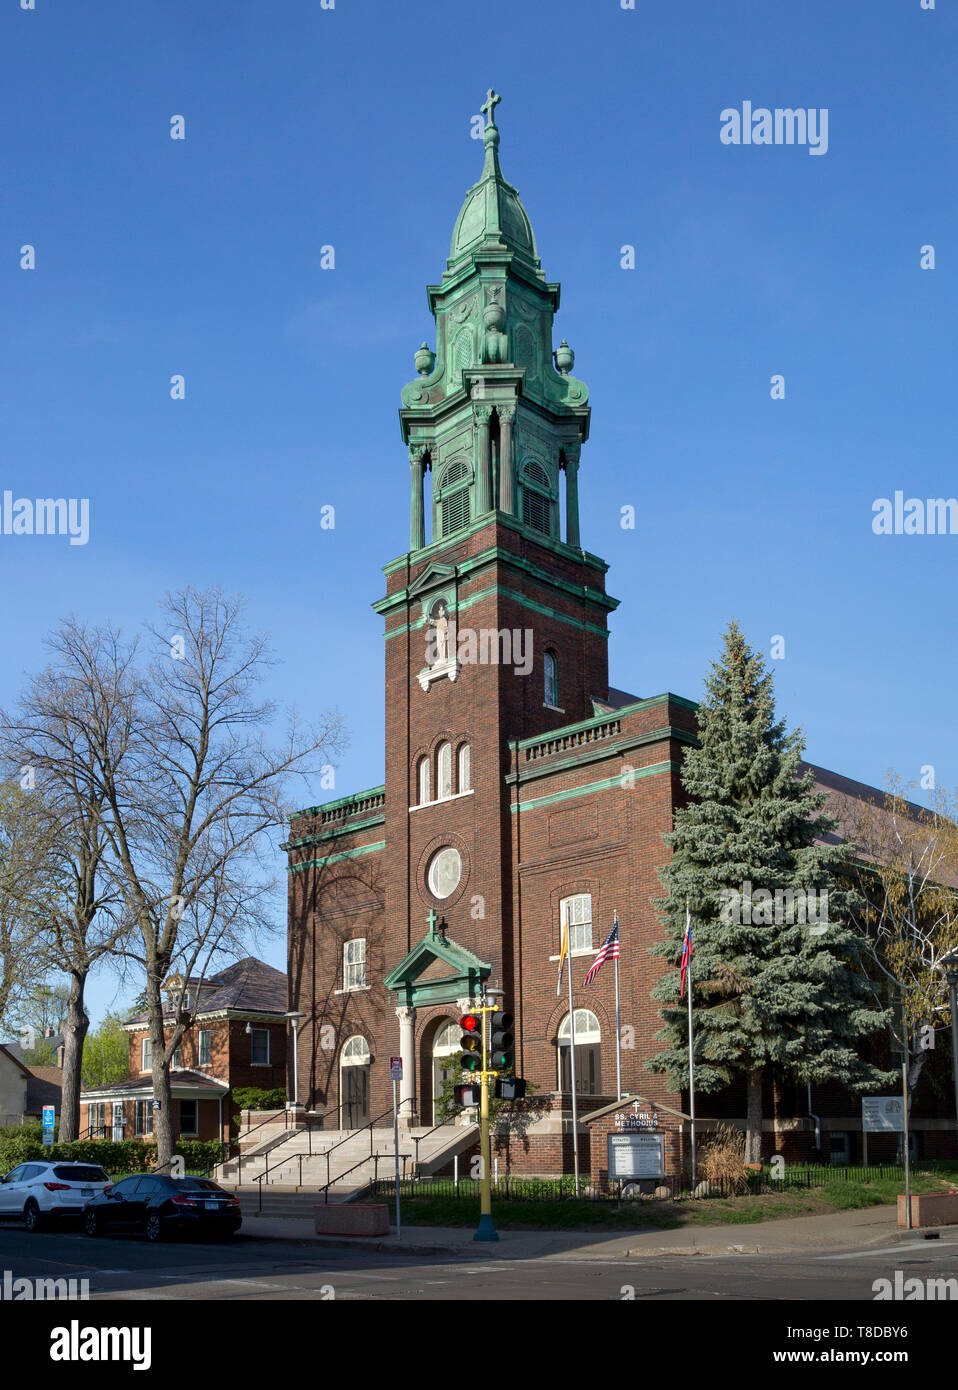 St. Cyril and Methodius Catholic Church in Northeast Minneapolis, Minnesota - The 1917 brick church was designed by Victor Cordella in the Renaissance - Stock Image